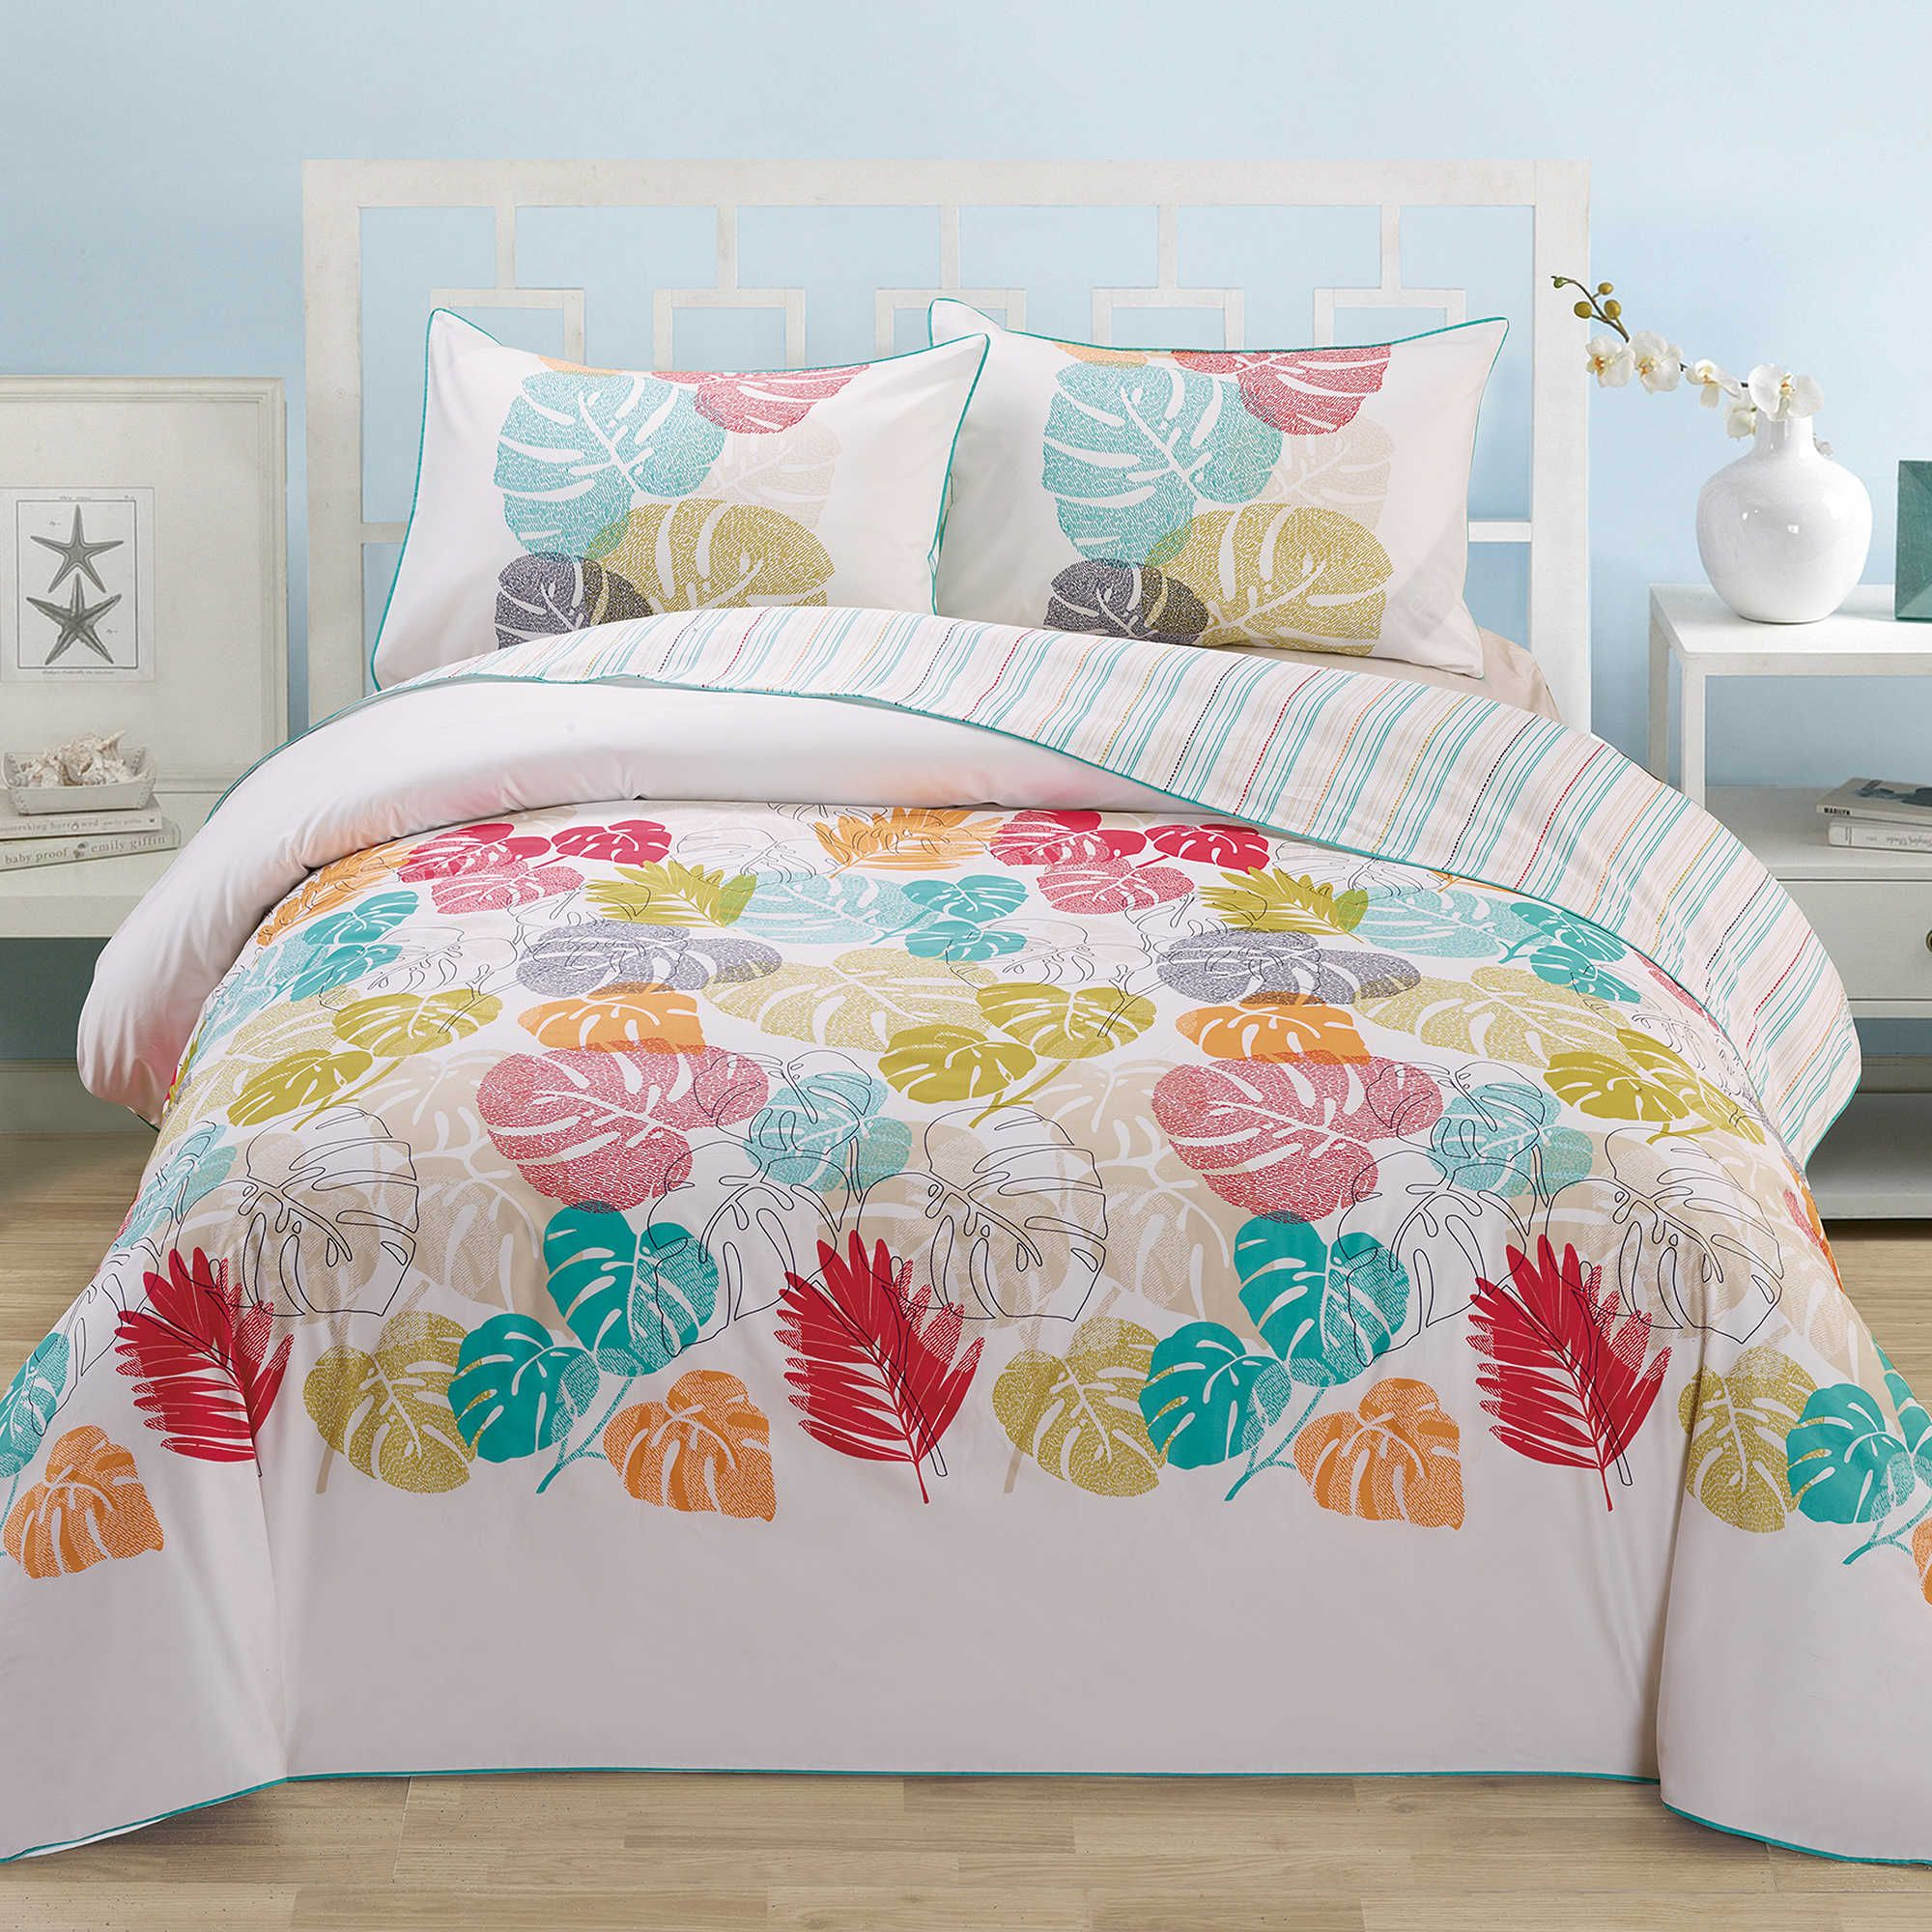 Leaf Organic Duvet Cover Set Duvet Cover Sets Organic Duvet